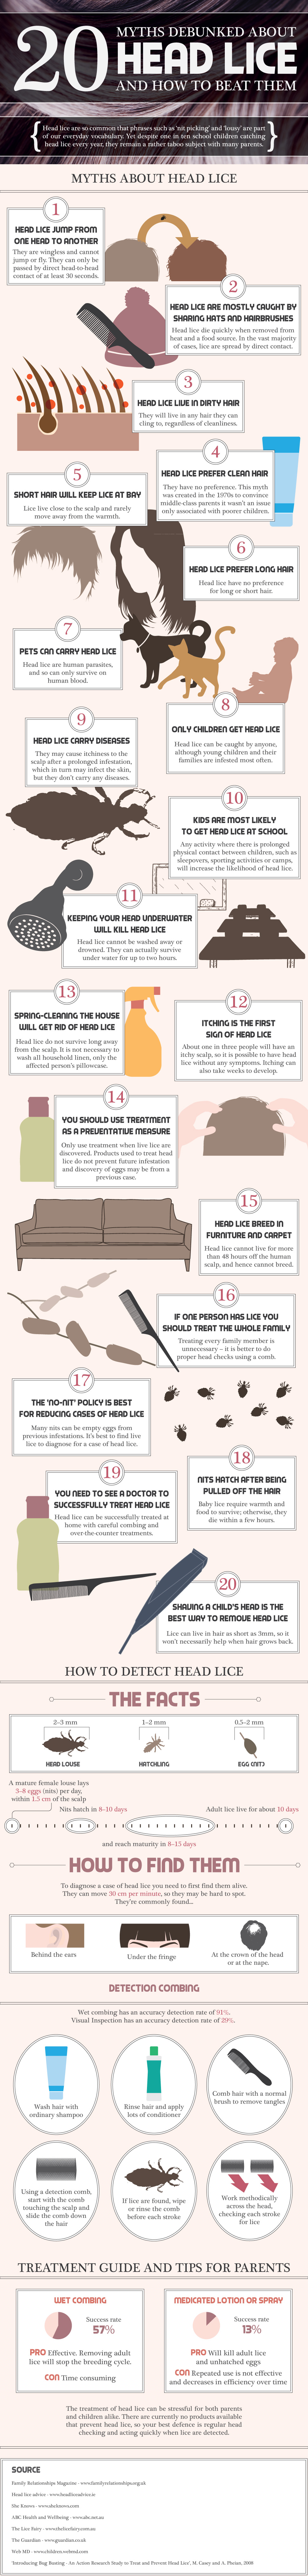 20 Facts About Headlice